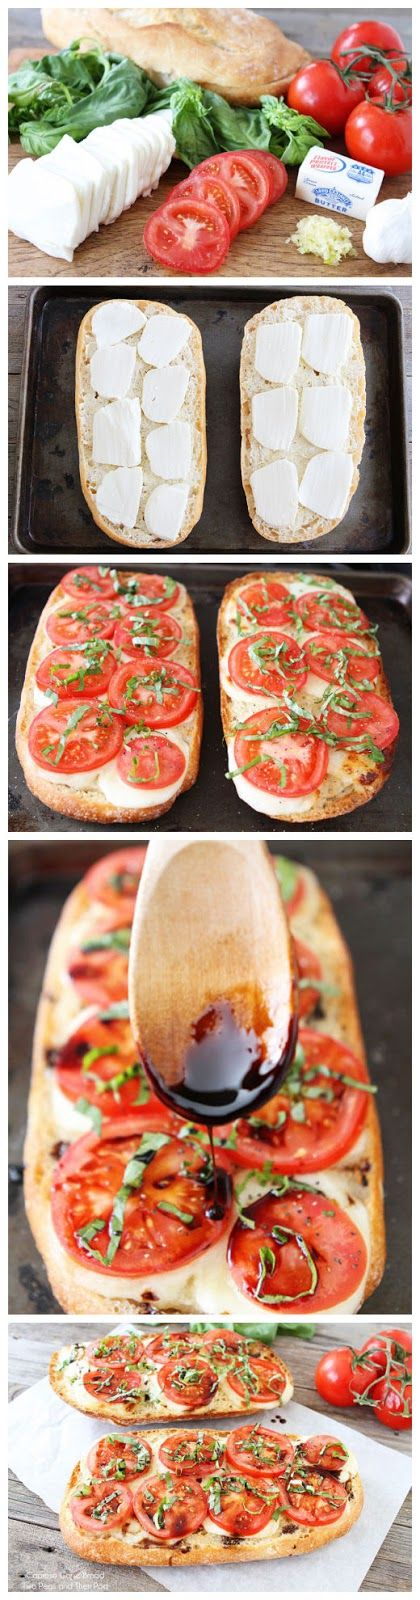 The key is amazing thick, aged, balsamic, not grocery store bought. It makes a huge difference. Easy Caprese Garlic Bread Recipe Ingredie...